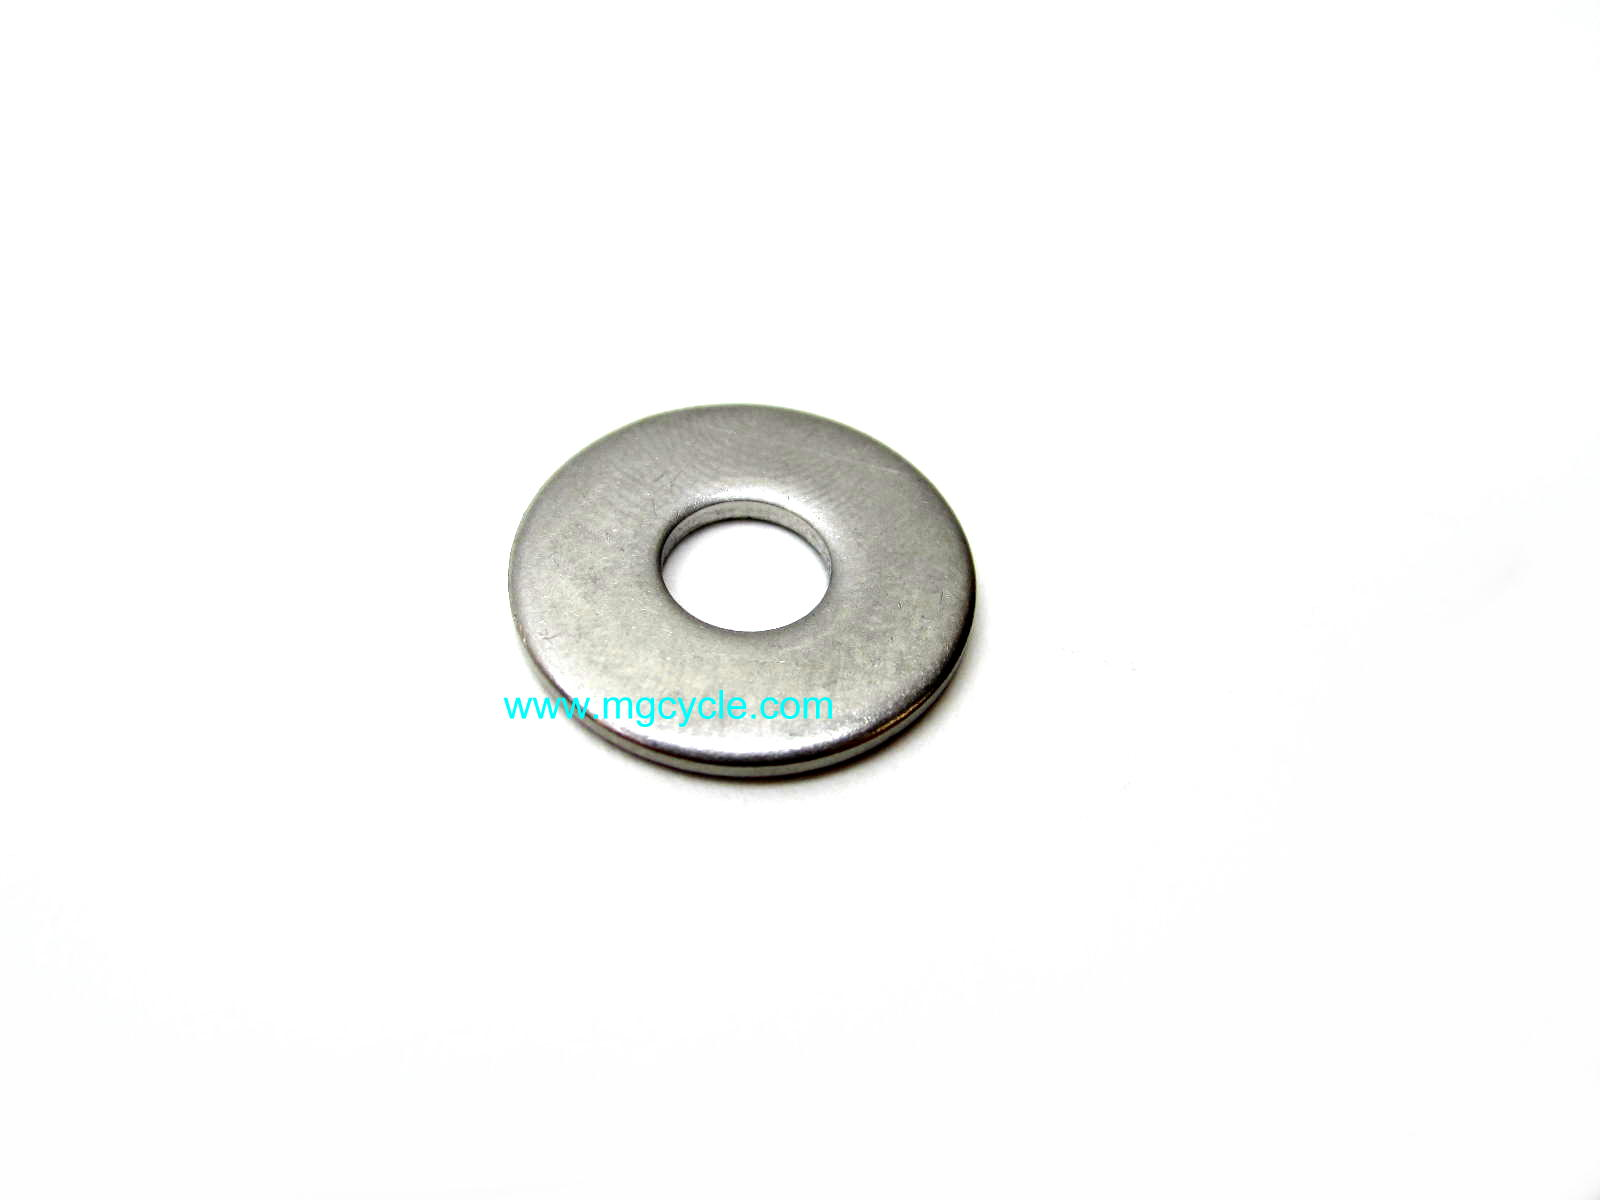 M8 fender washer, stainless for various rubber mounts GU95000255